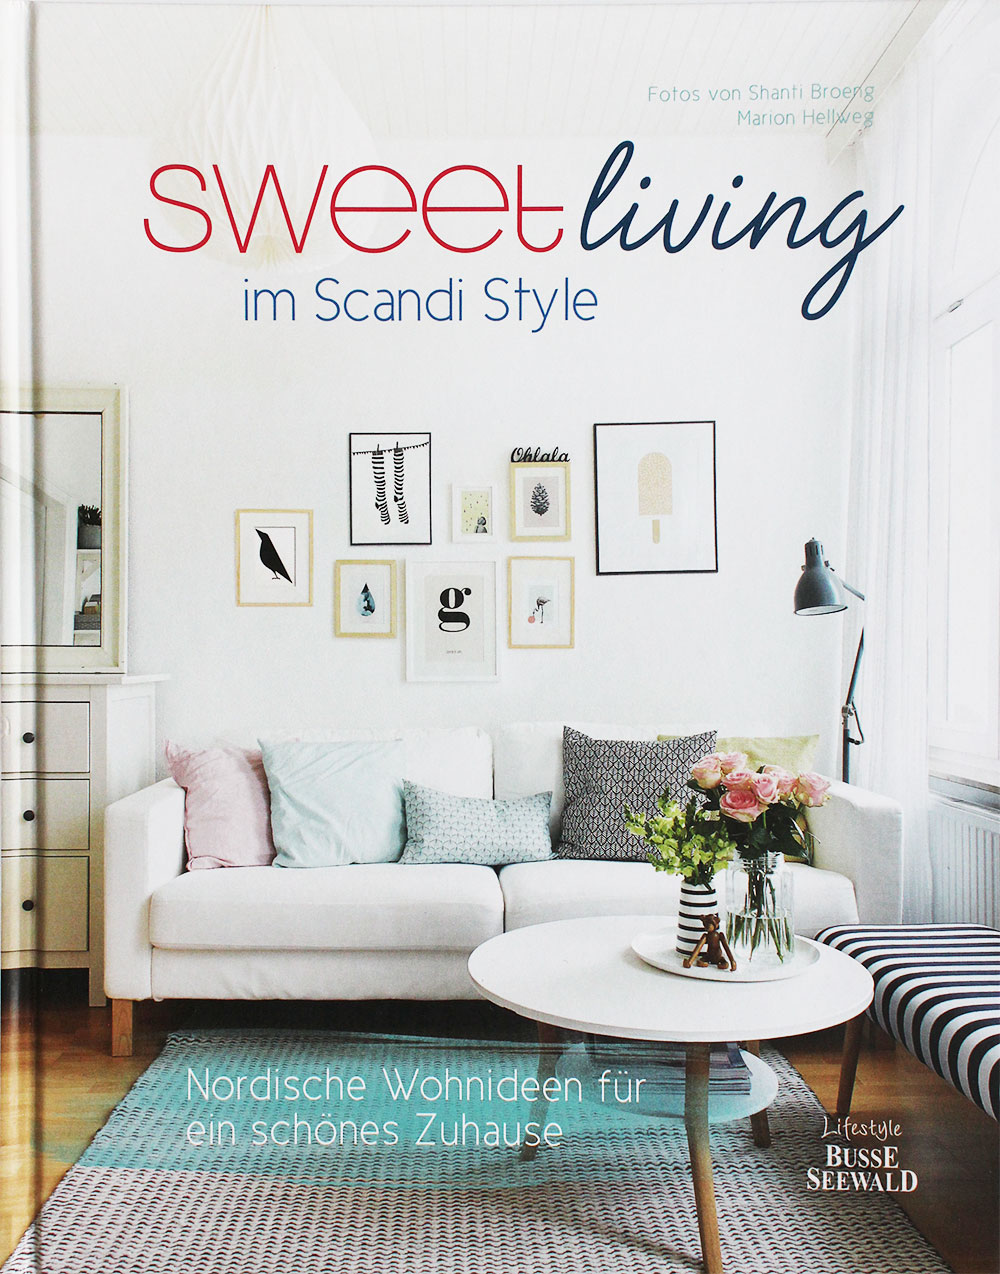 Wohnideen Lifestyle 2015 oh what a room presse oh what a room